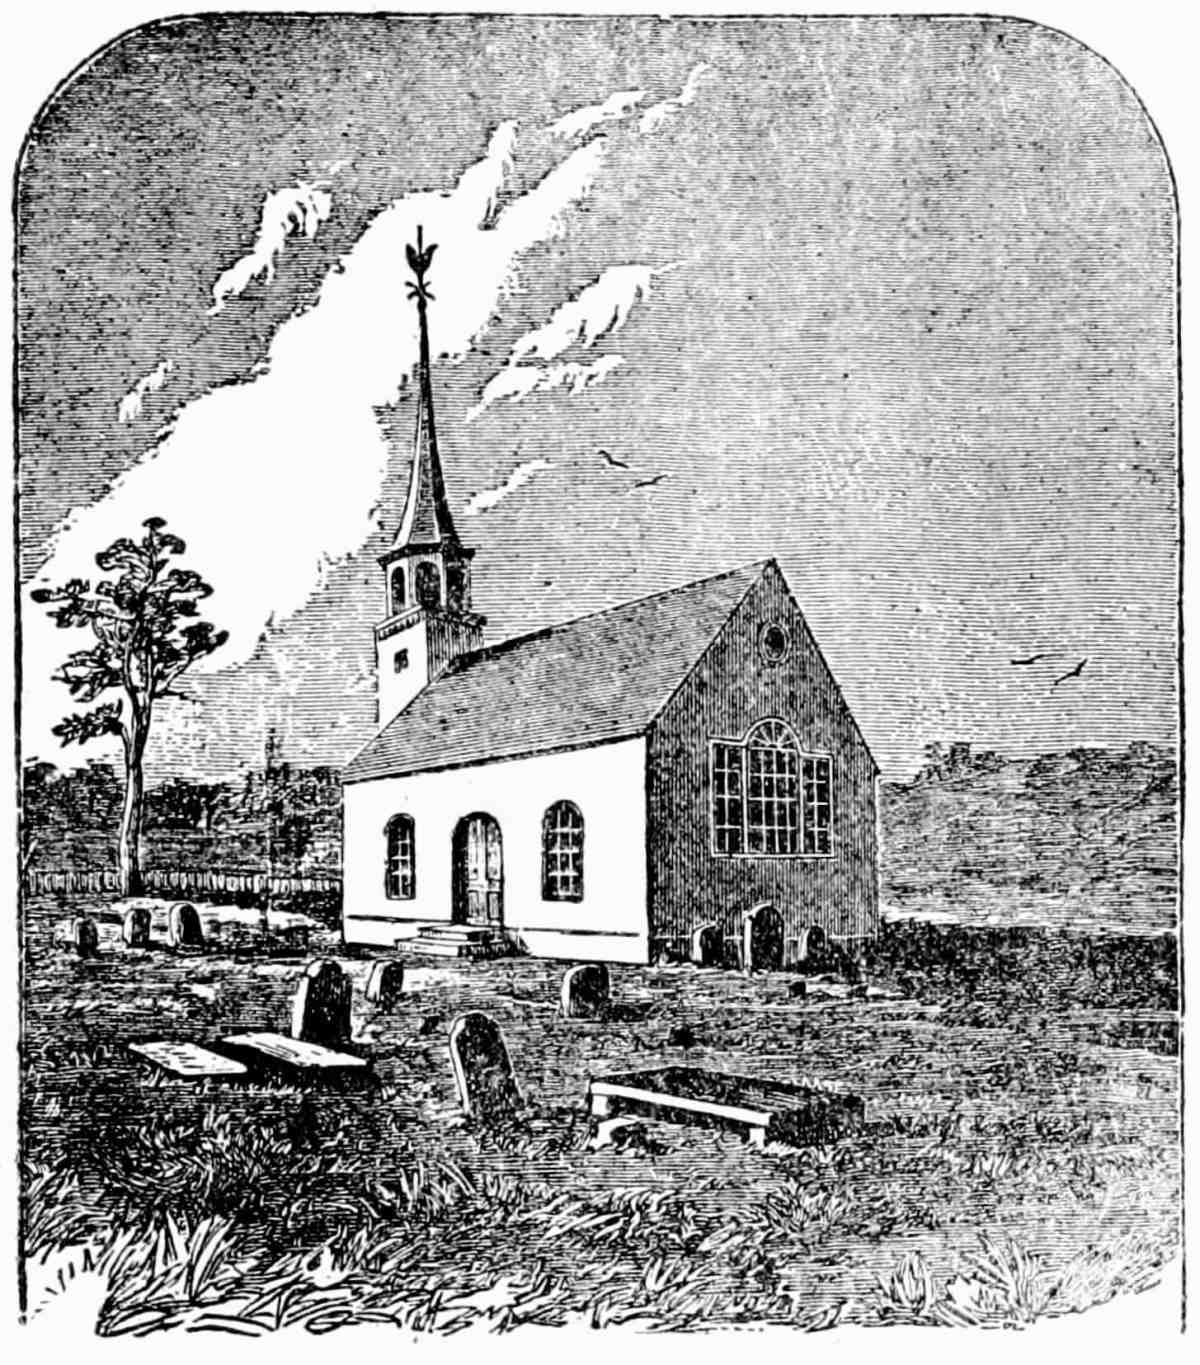 The original church building of St. George's Episcopal Church, Hempstead.